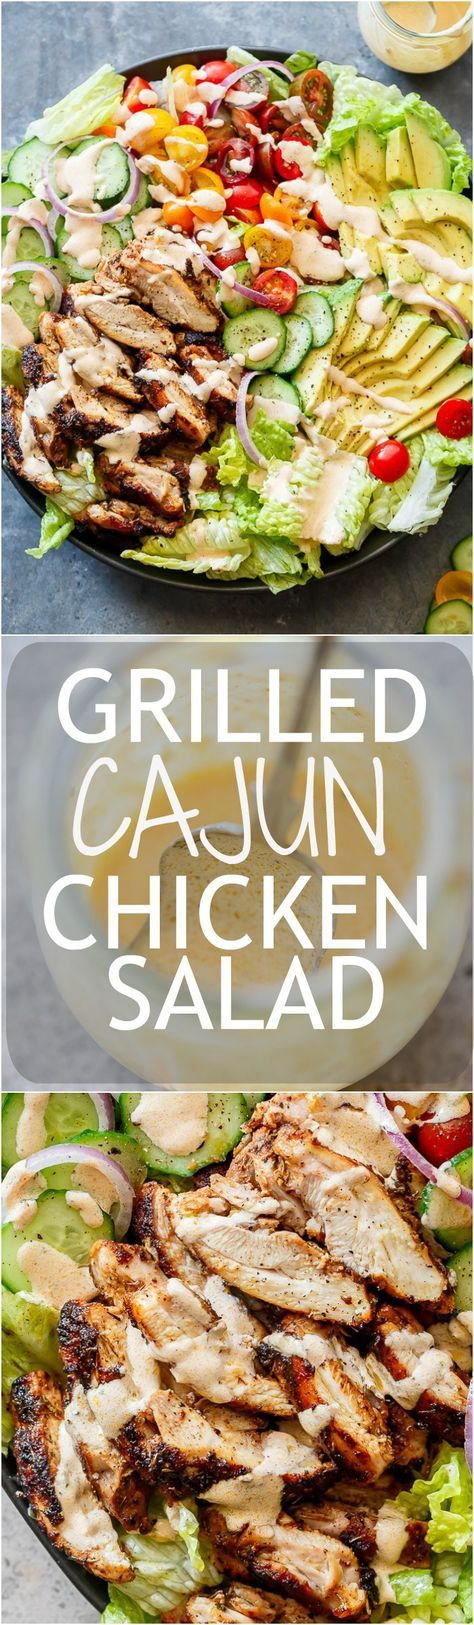 A Cajun Chicken Salad with a homemade Cajun spice seasoning and the most incredible creamy cajun dressing to put out the fire (so to speak)!